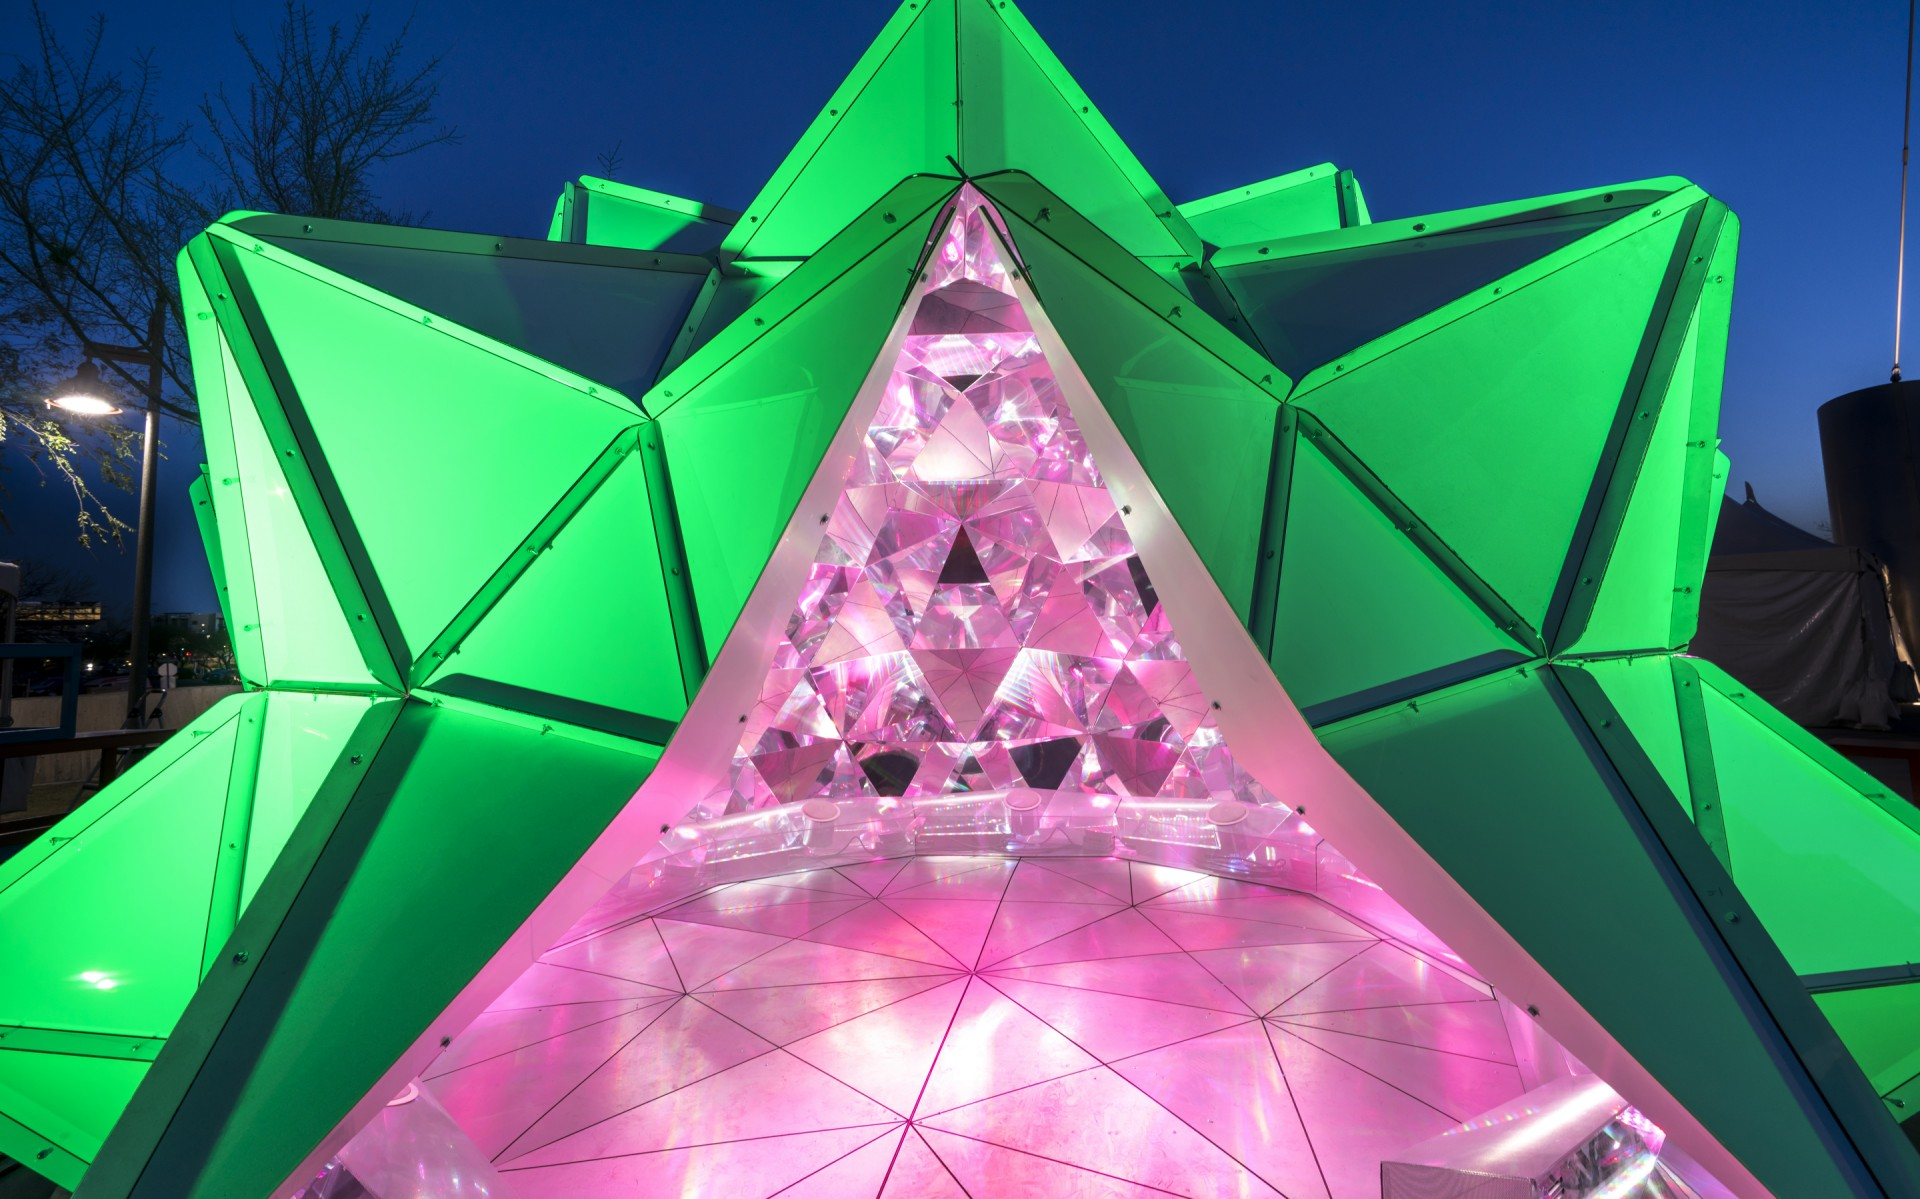 The installation uses four Lumenbeam Large Color Changing luminaires with a narrow, 20-degree beam angle to illuminate the exterior of the dome. – Sean Deckert